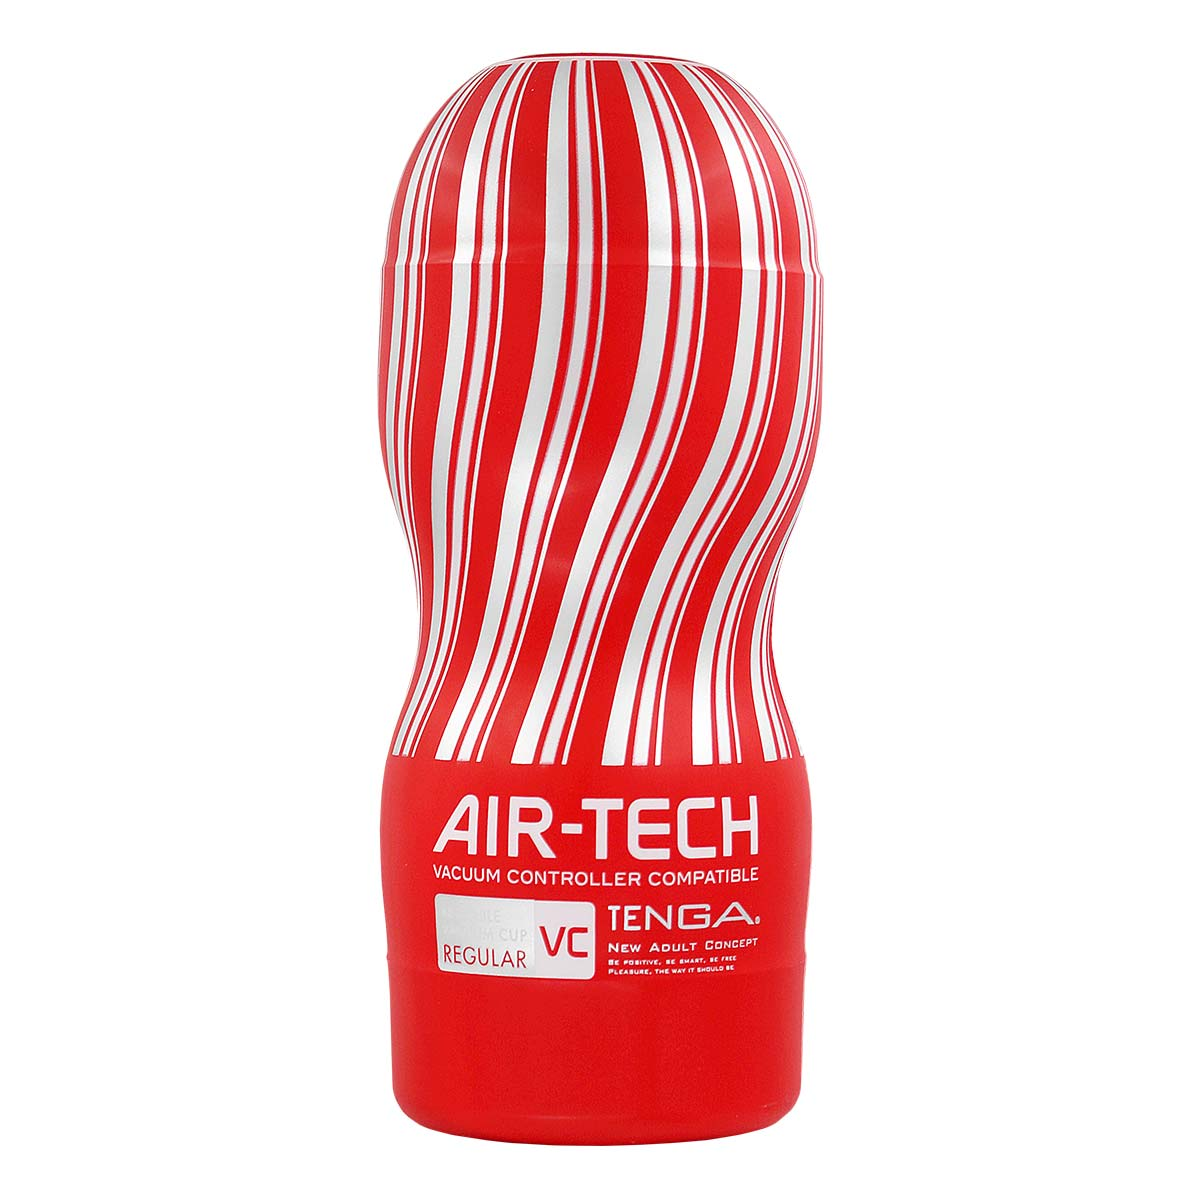 TENGA AIR-TECH REUSABLE VACUUM CUP VC REGULAR